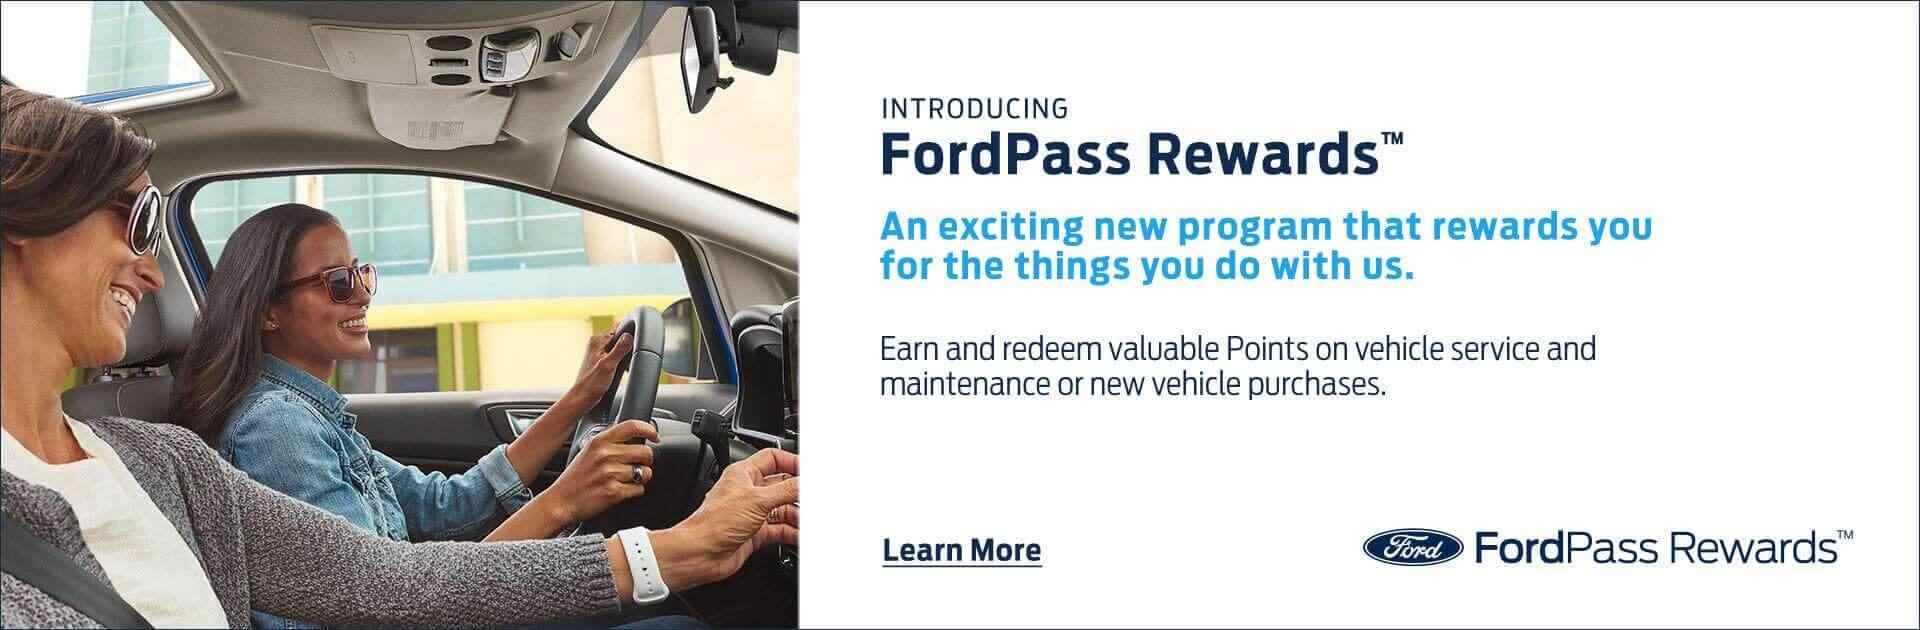 Fordpassrewards Desktop Min Compressed